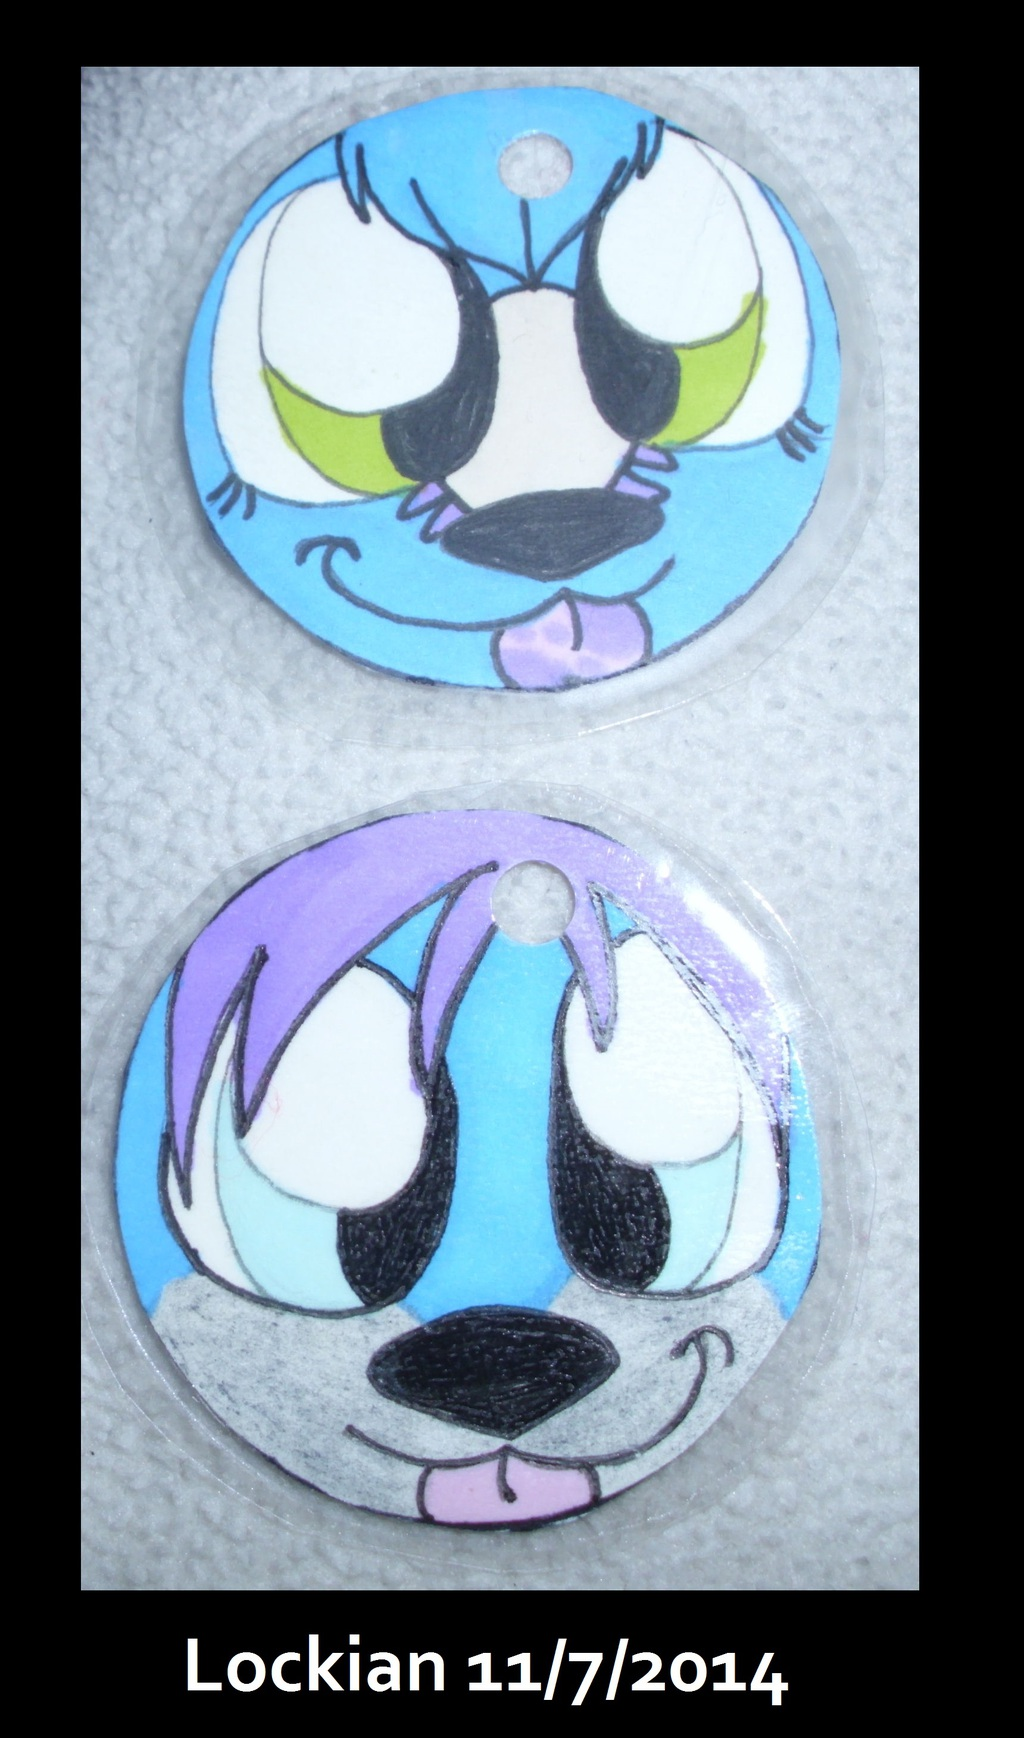 Promarker collar tags for Tarquin and Blizzard